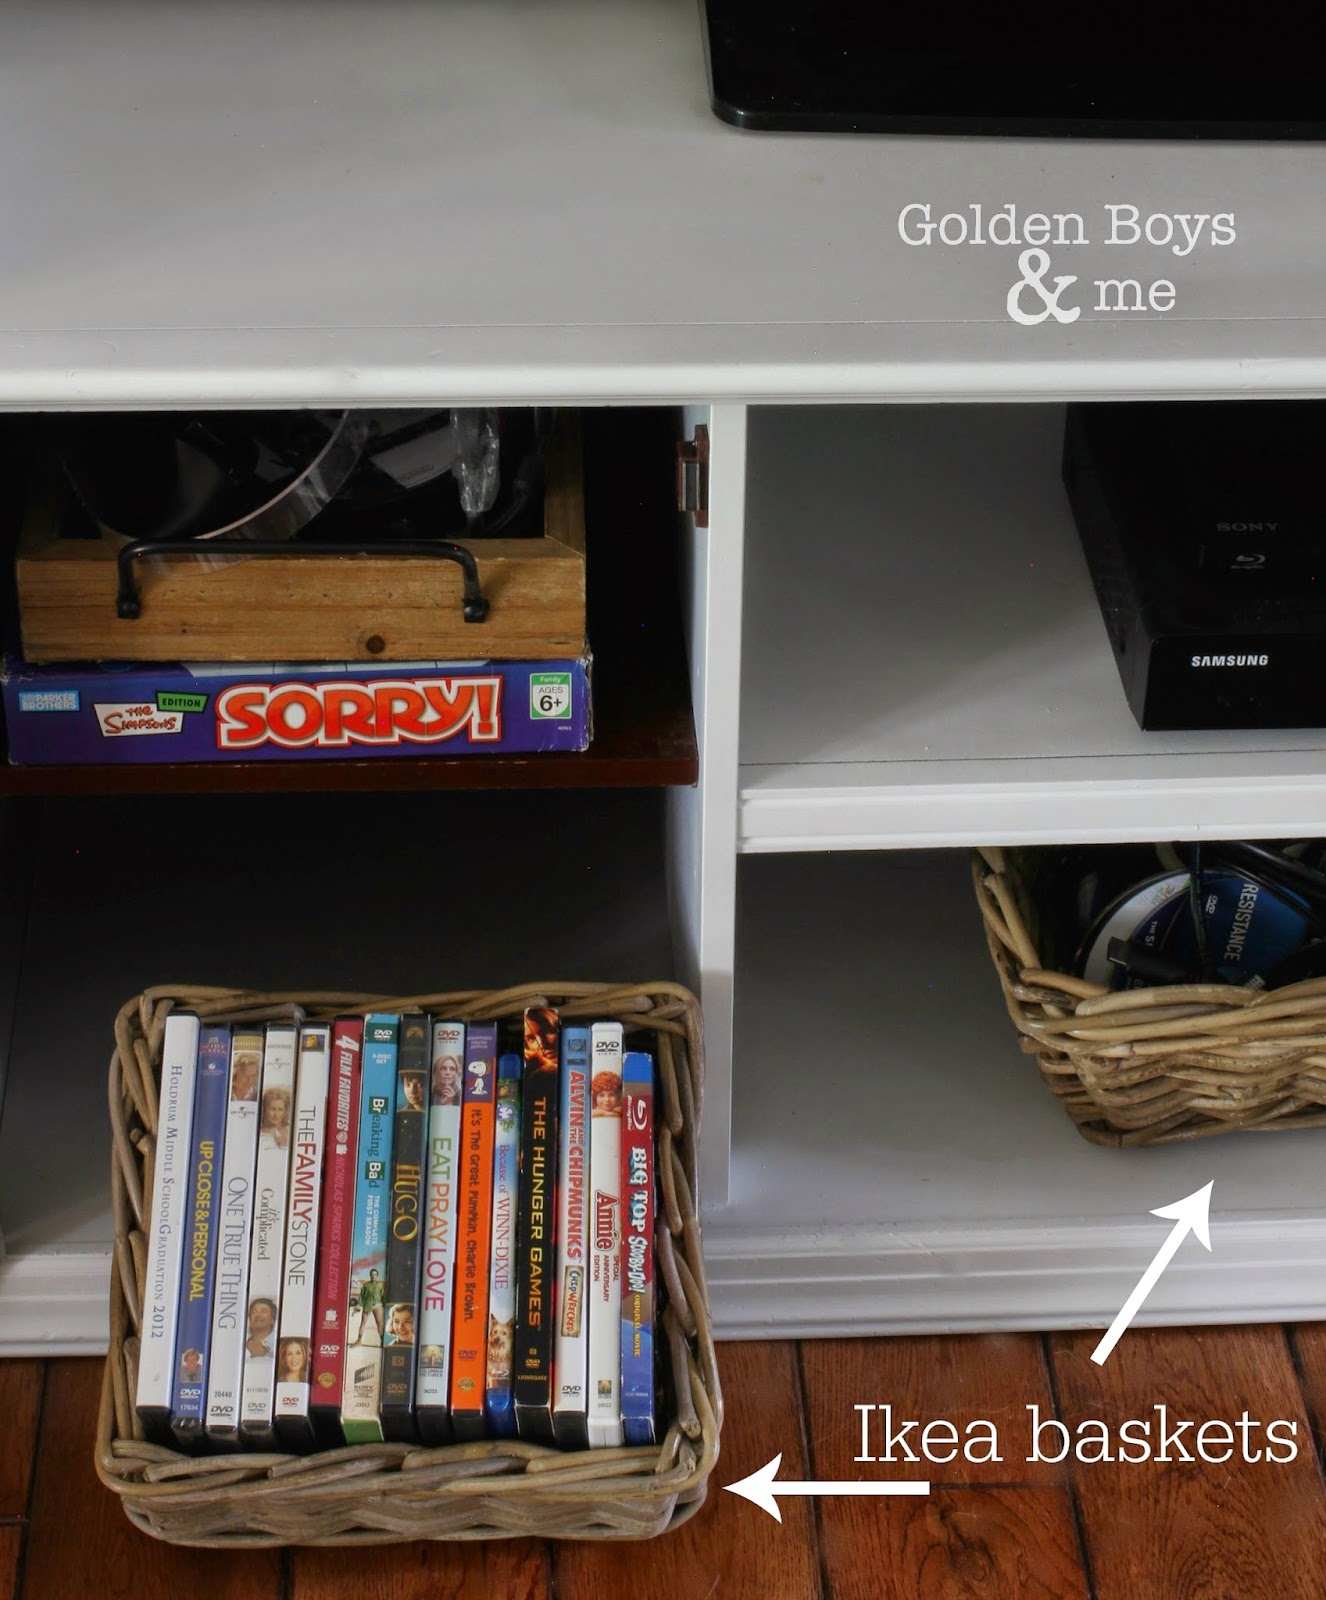 Ikea baskets to store movies and video games in family room-www.goldenboysandme.com